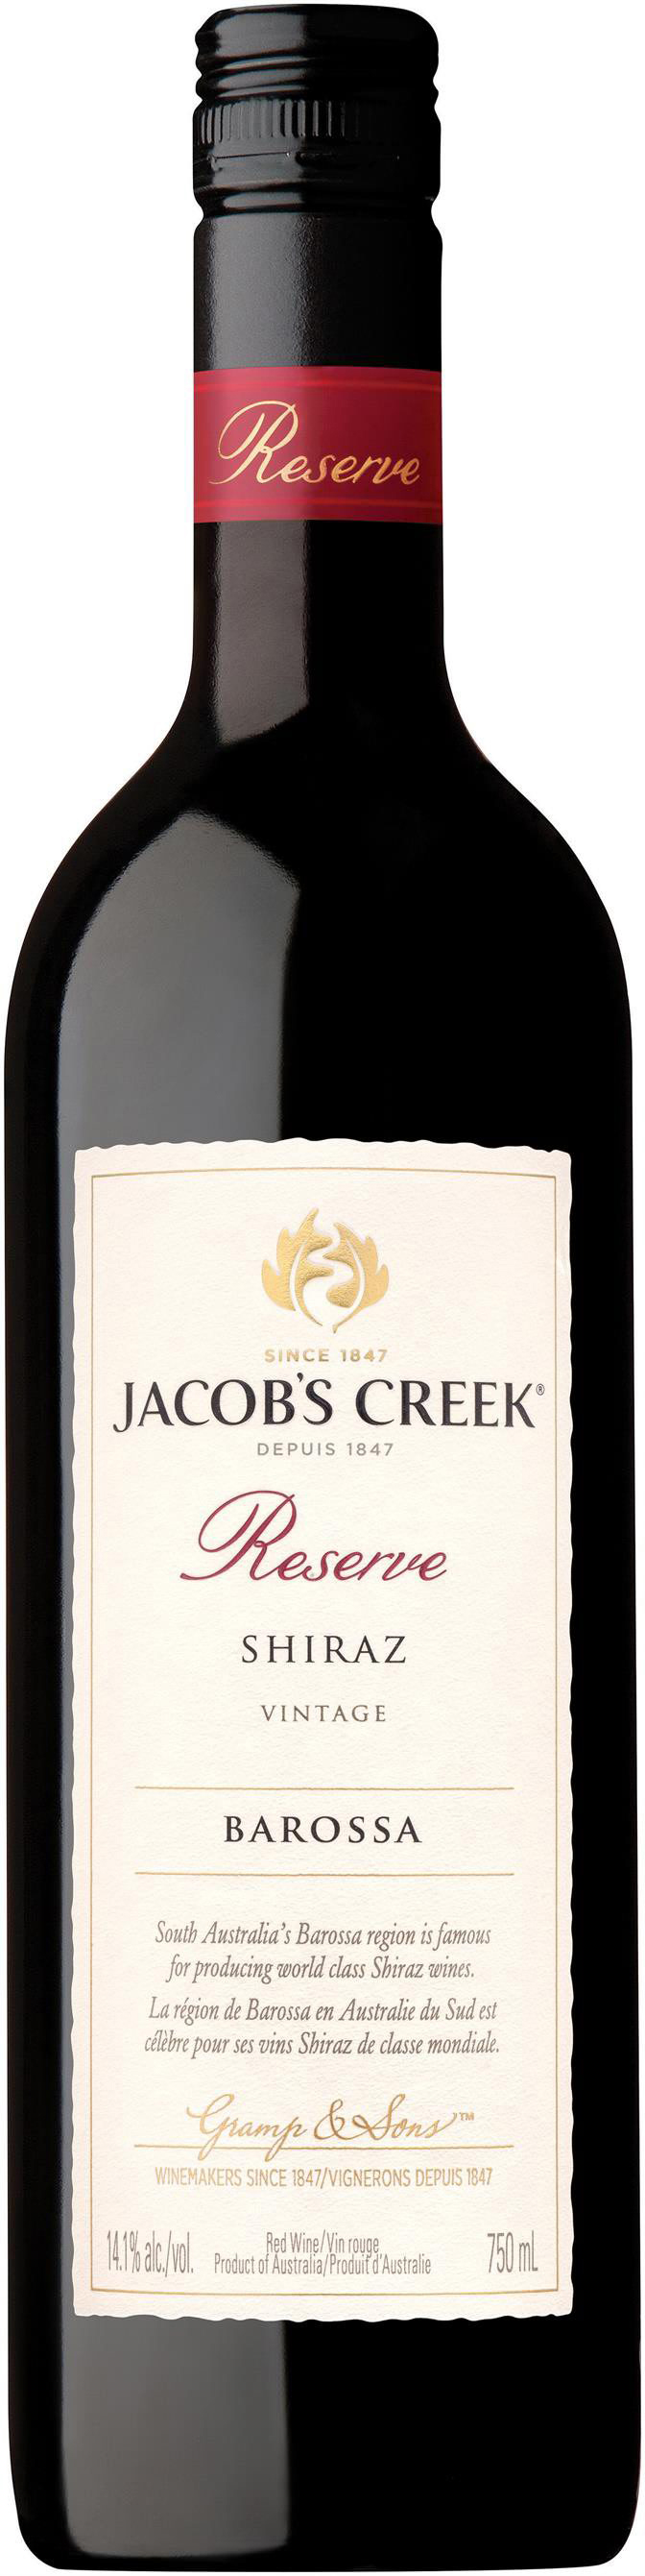 Jacob's Creek Reserve Shiraz 2013, 150cl